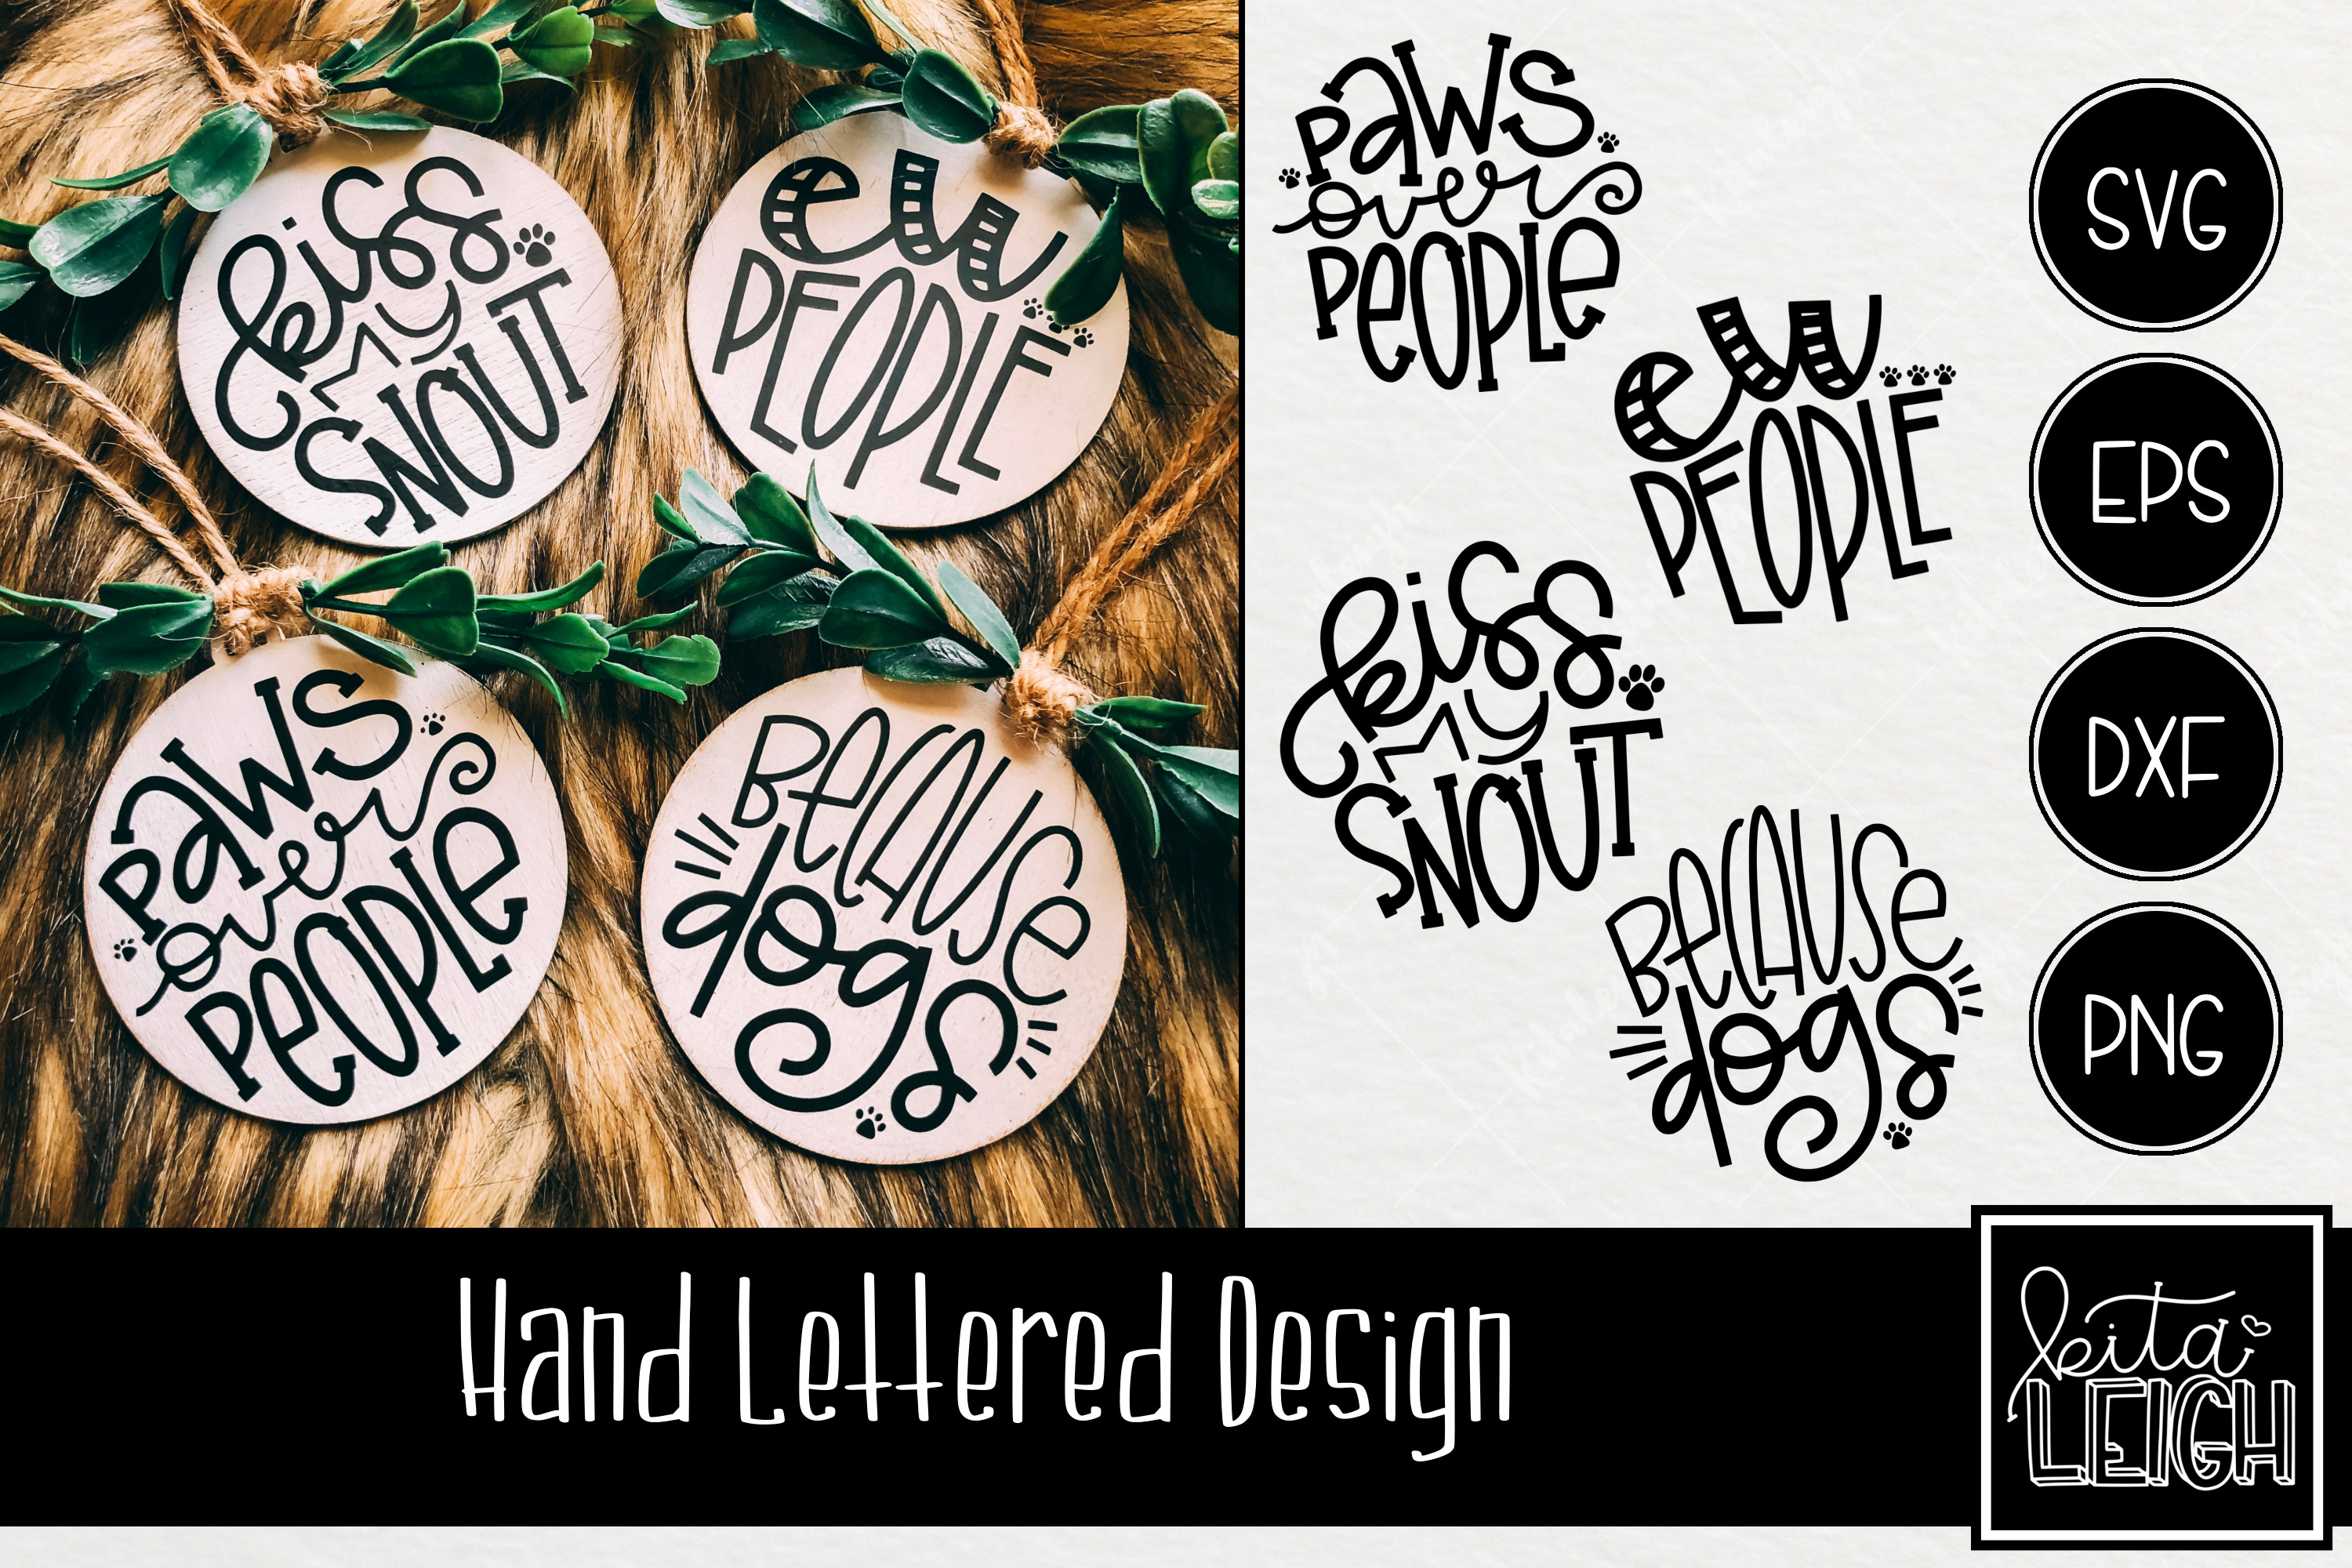 Dog Hand Lettered Rounds SVG example image 1